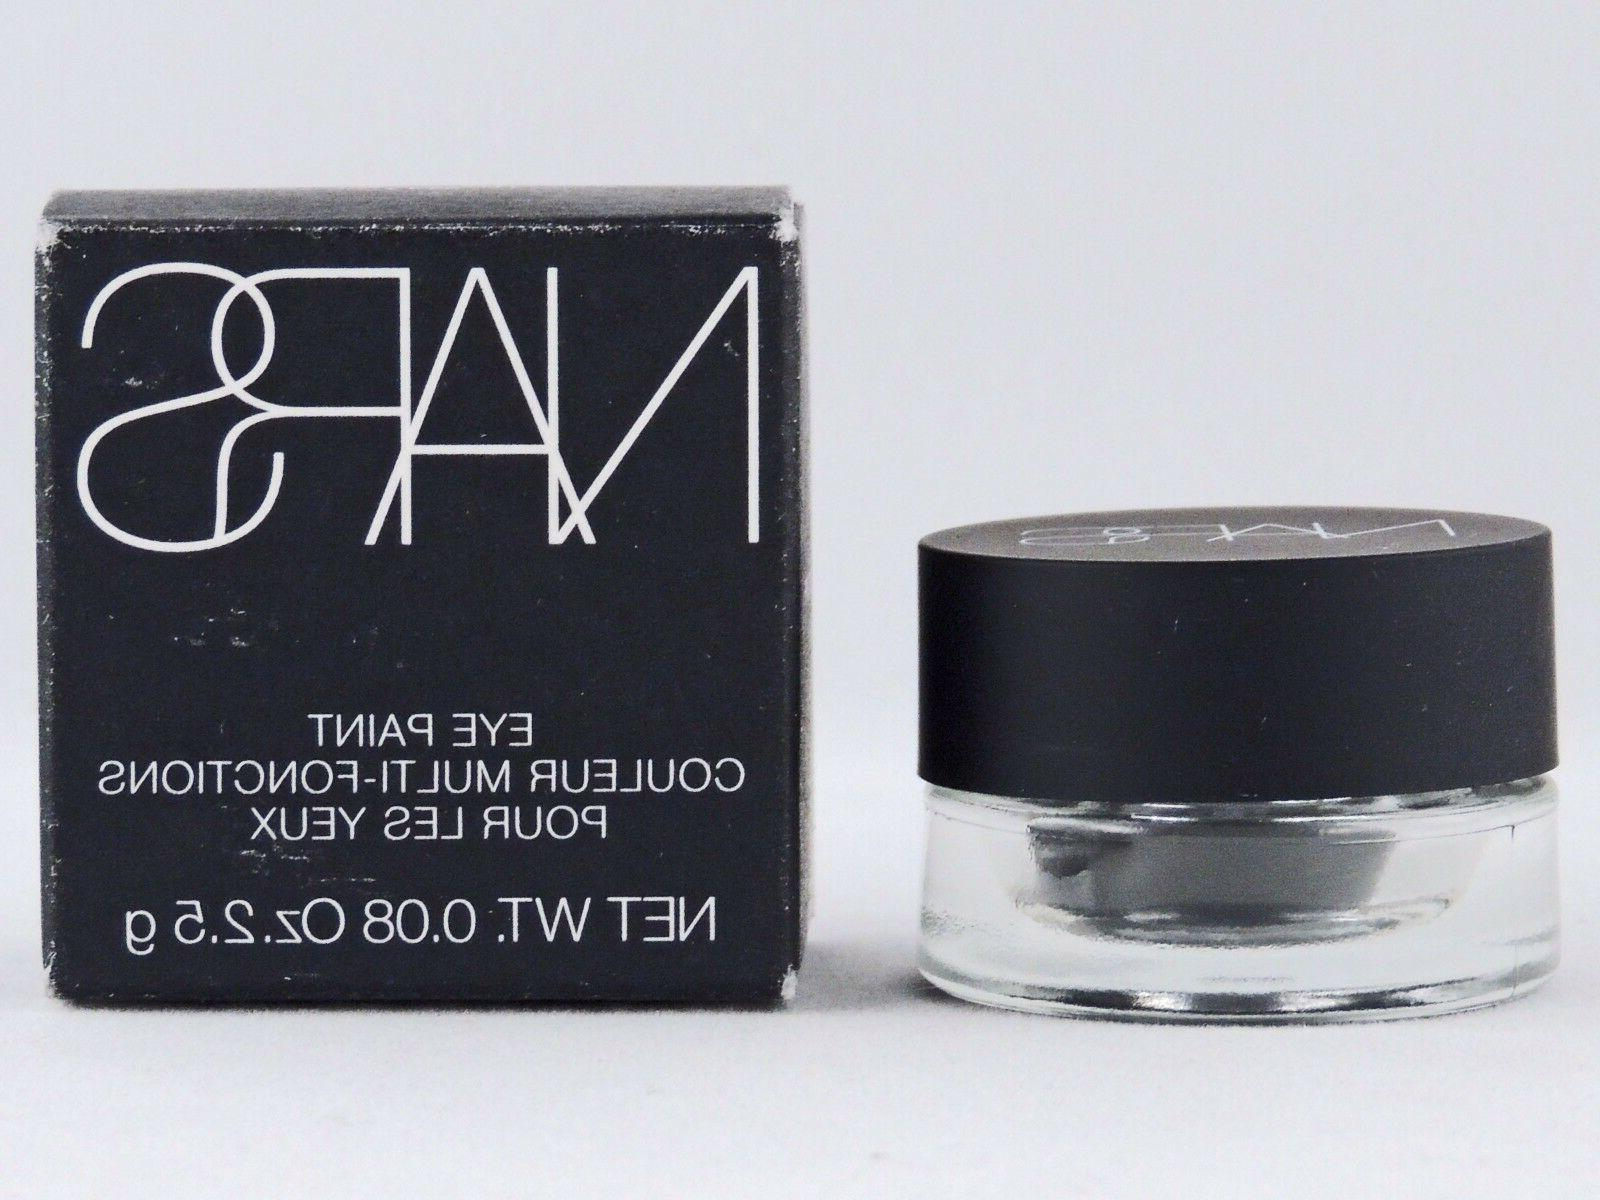 eye paint 8143 transvaal 2 5g 08oz